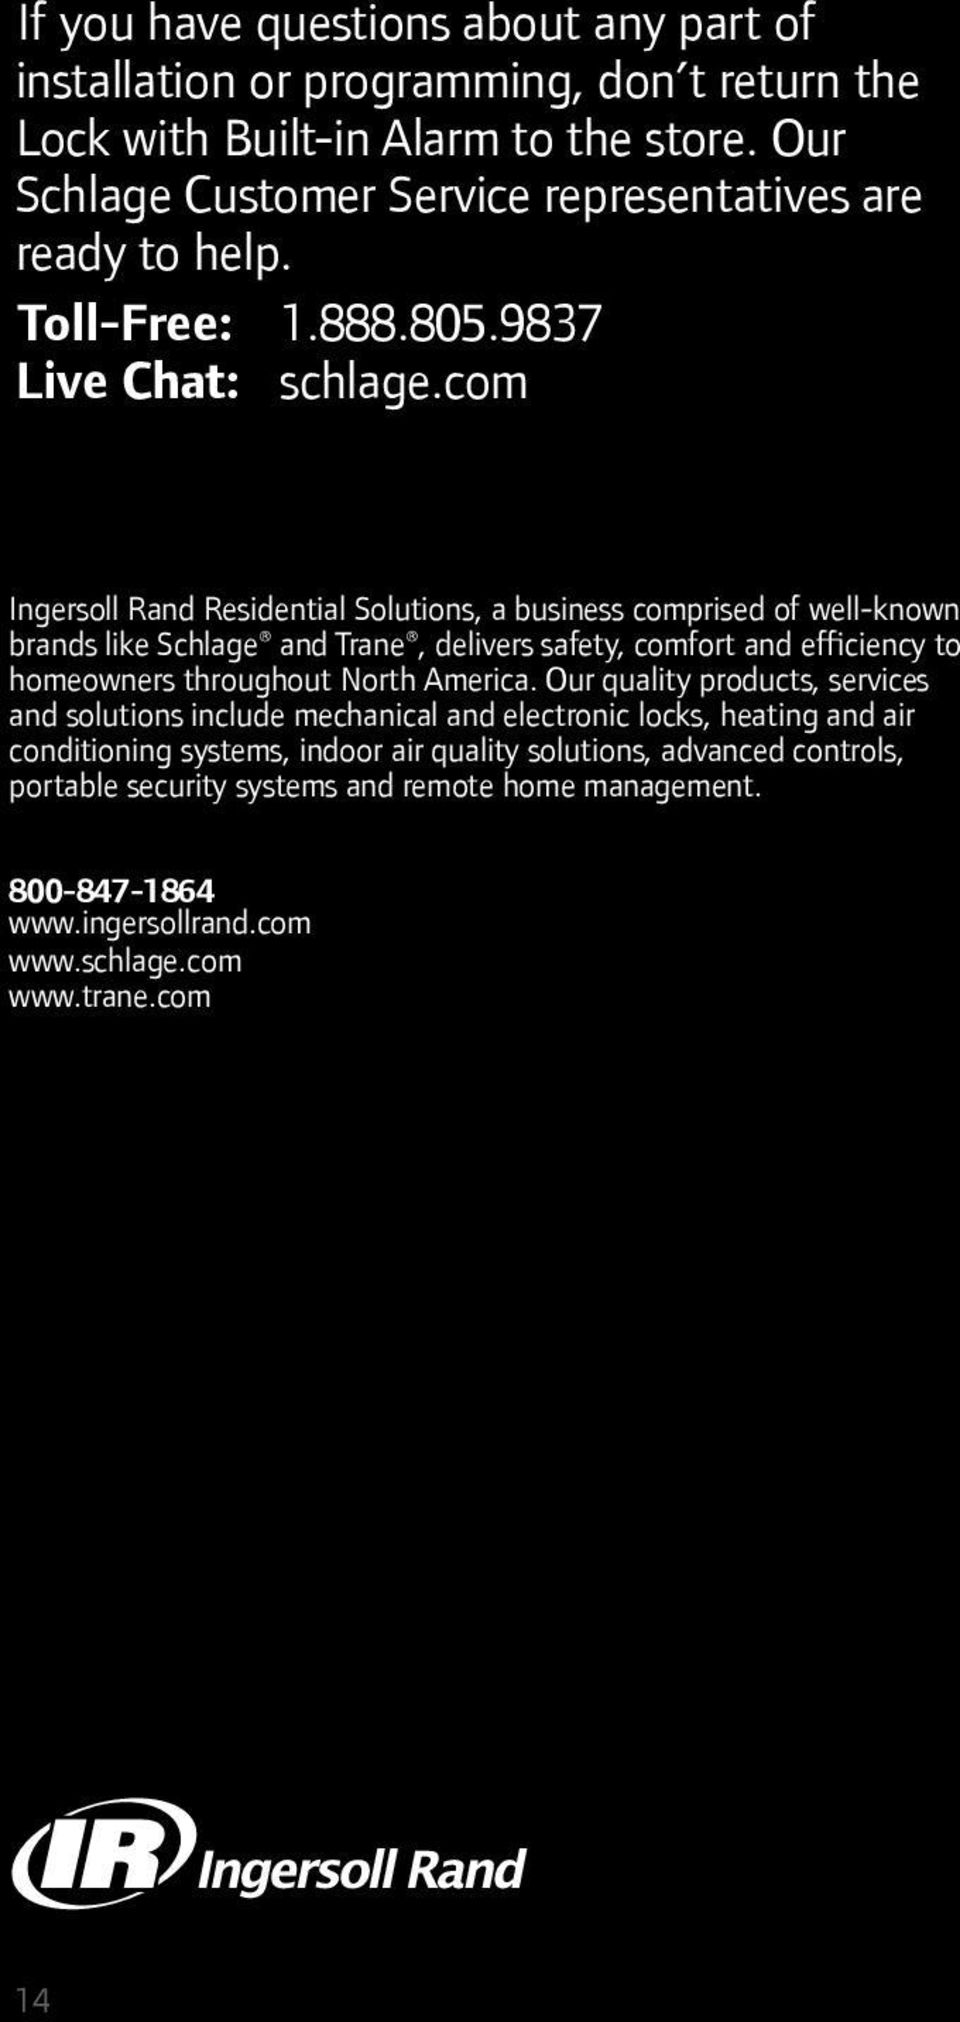 com Ingersoll Rand Residential Solutions, a business comprised of well-known brands like Schlage and Trane, delivers safety, comfort and efficiency to homeowners throughout North